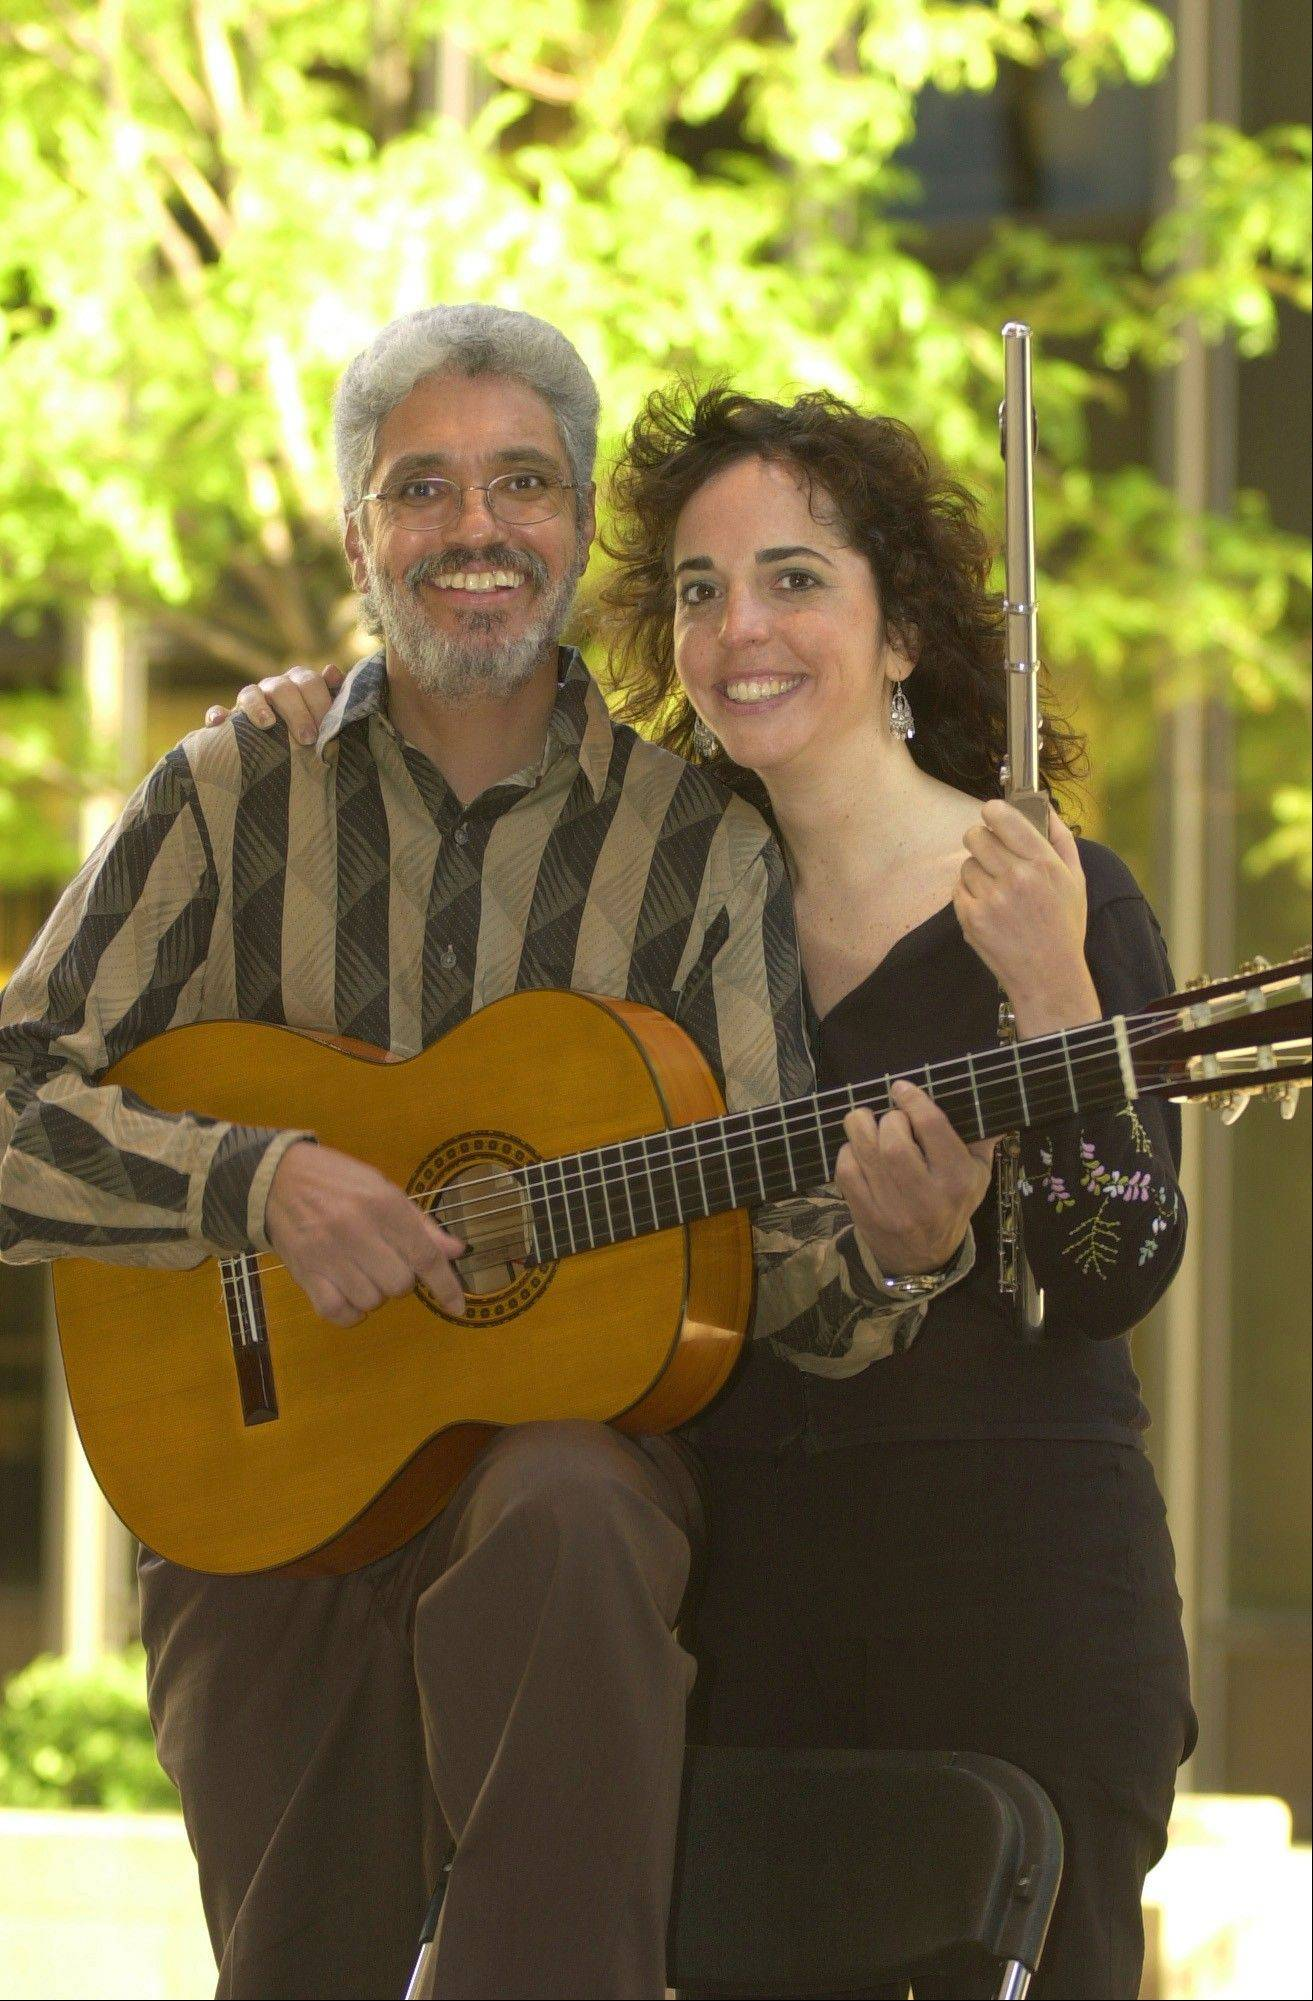 From Latin America with Love is a night of tango, South American music and romance featuring Dois no Choro, at the Richard H. Driehaus Museum on Feb. 7.